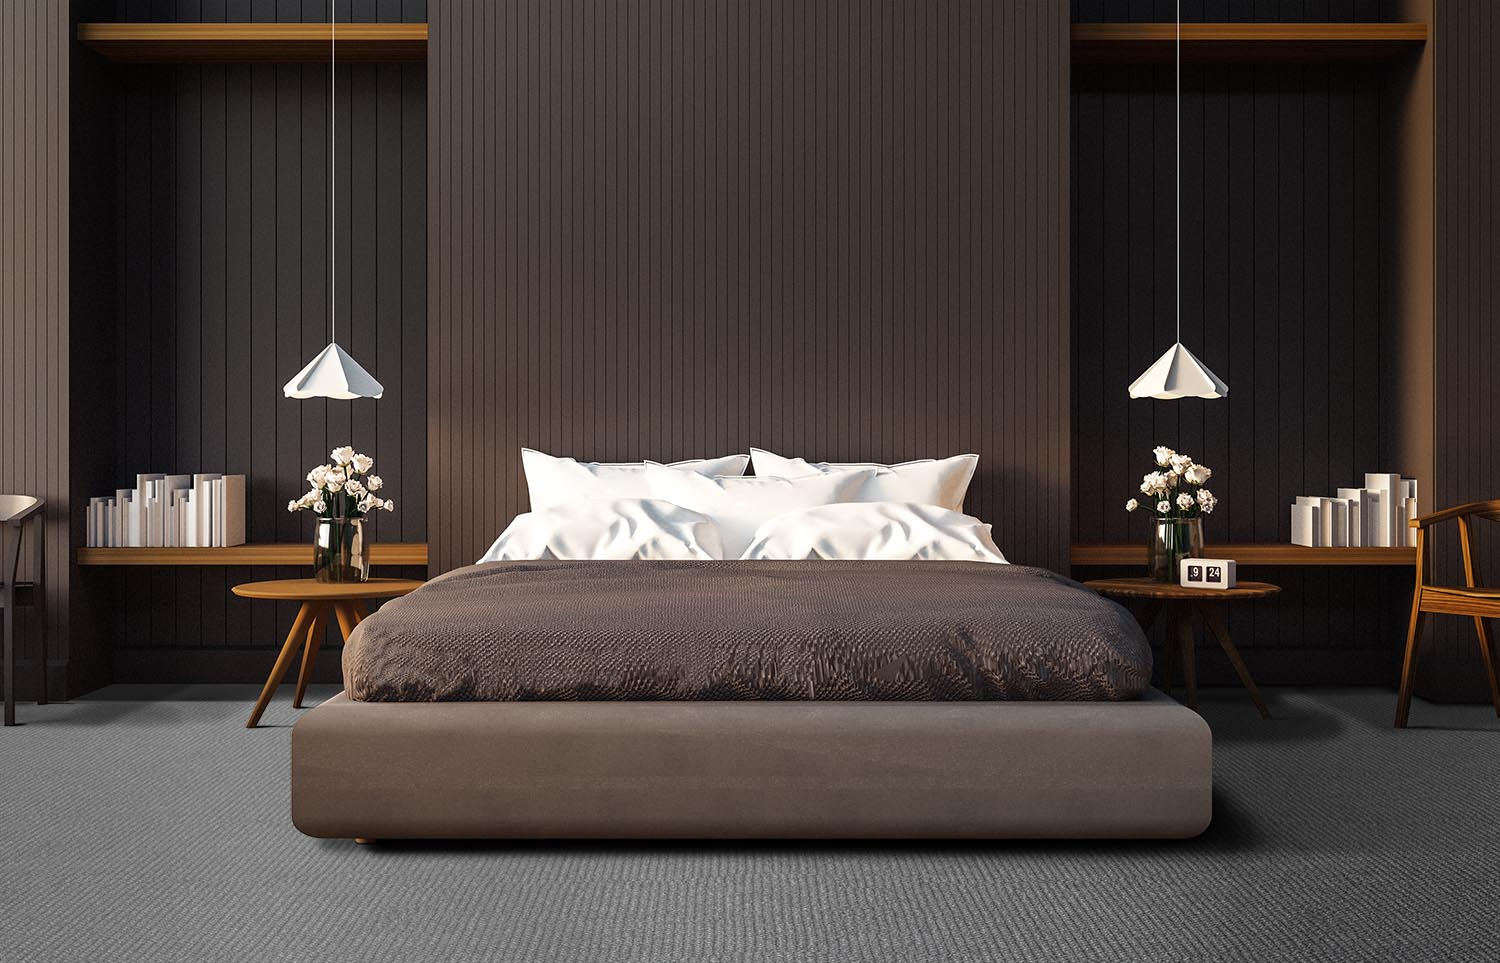 Co-Exist - Balanced Being contemporary bedroom